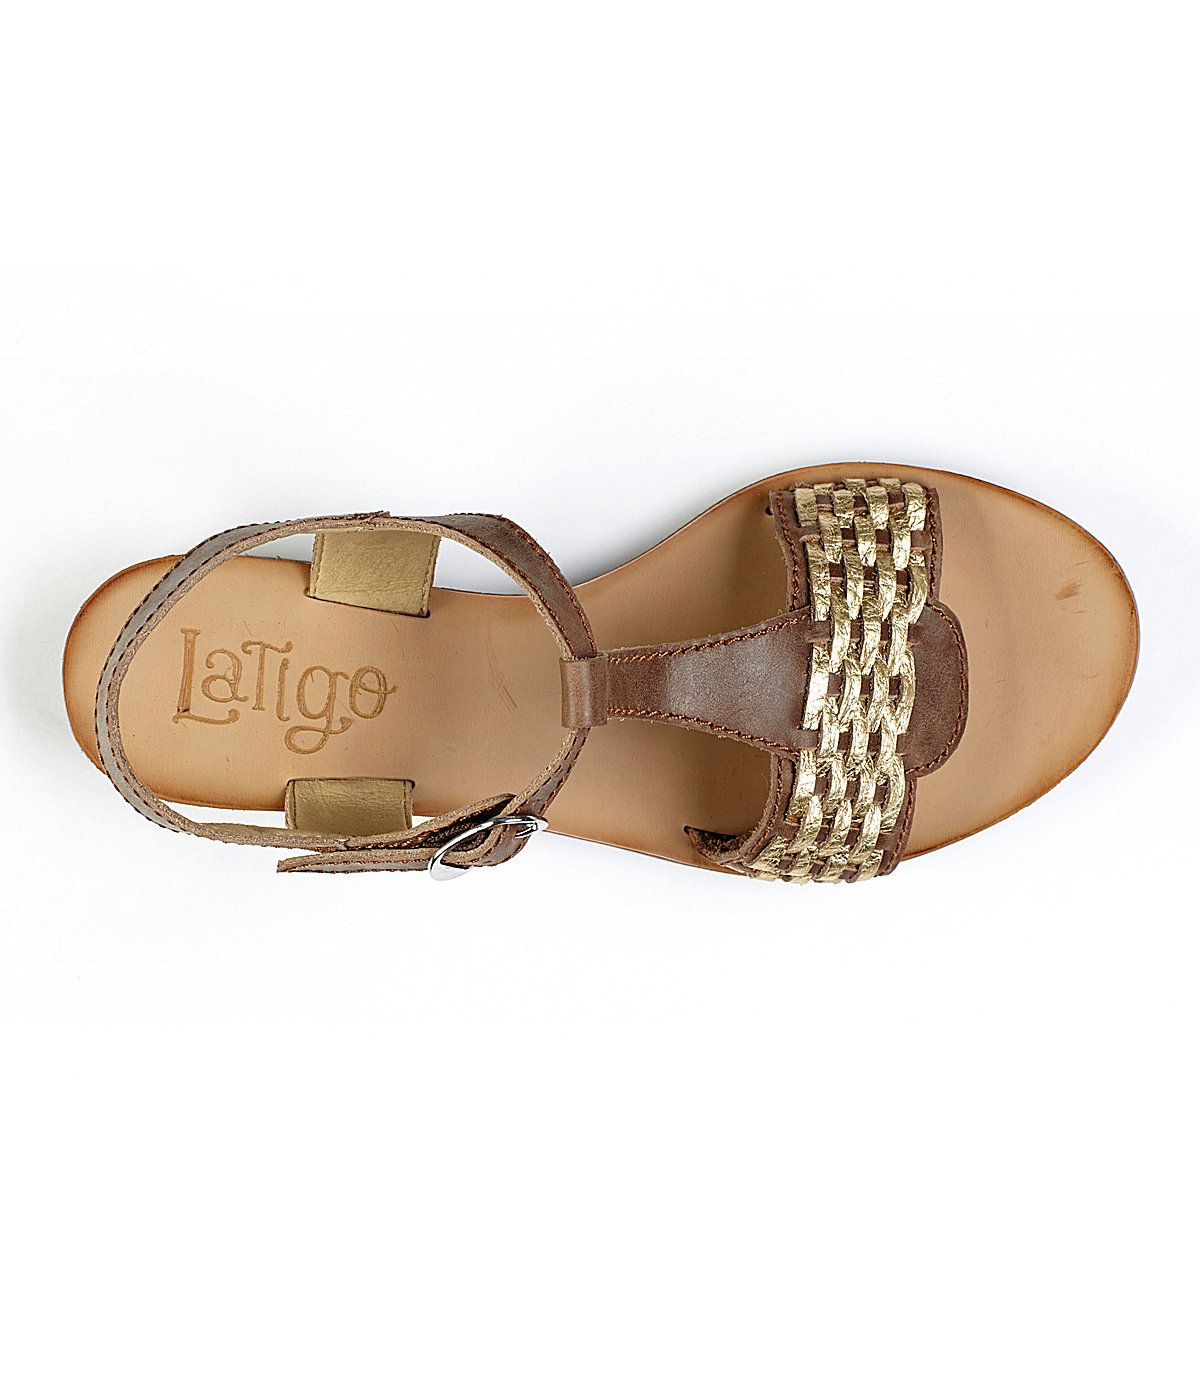 Latigo Women´s River Sandals | Dillards.com